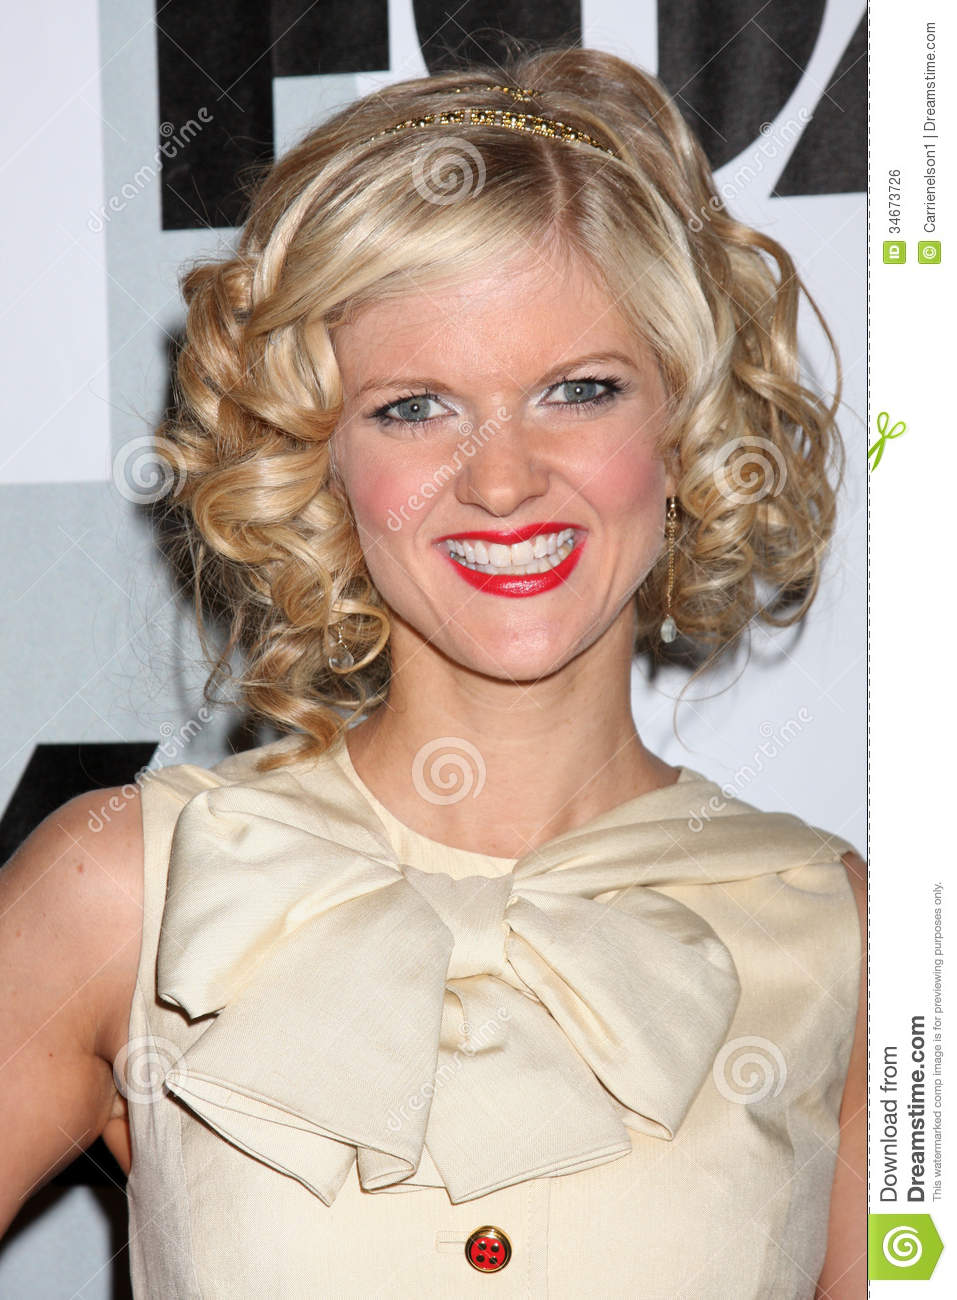 arden myrin imdbarden myrin instagram, arden myrin, arden myrin comedian, arden myrin michaela watkins, arden myrin adam scott, arden myrin imdb, arden myrin net worth, arden myrin hung, arden myrin stand up, arden myrin friends, arden myrin nudography, arden myrin youtube, arden myrin mr skin